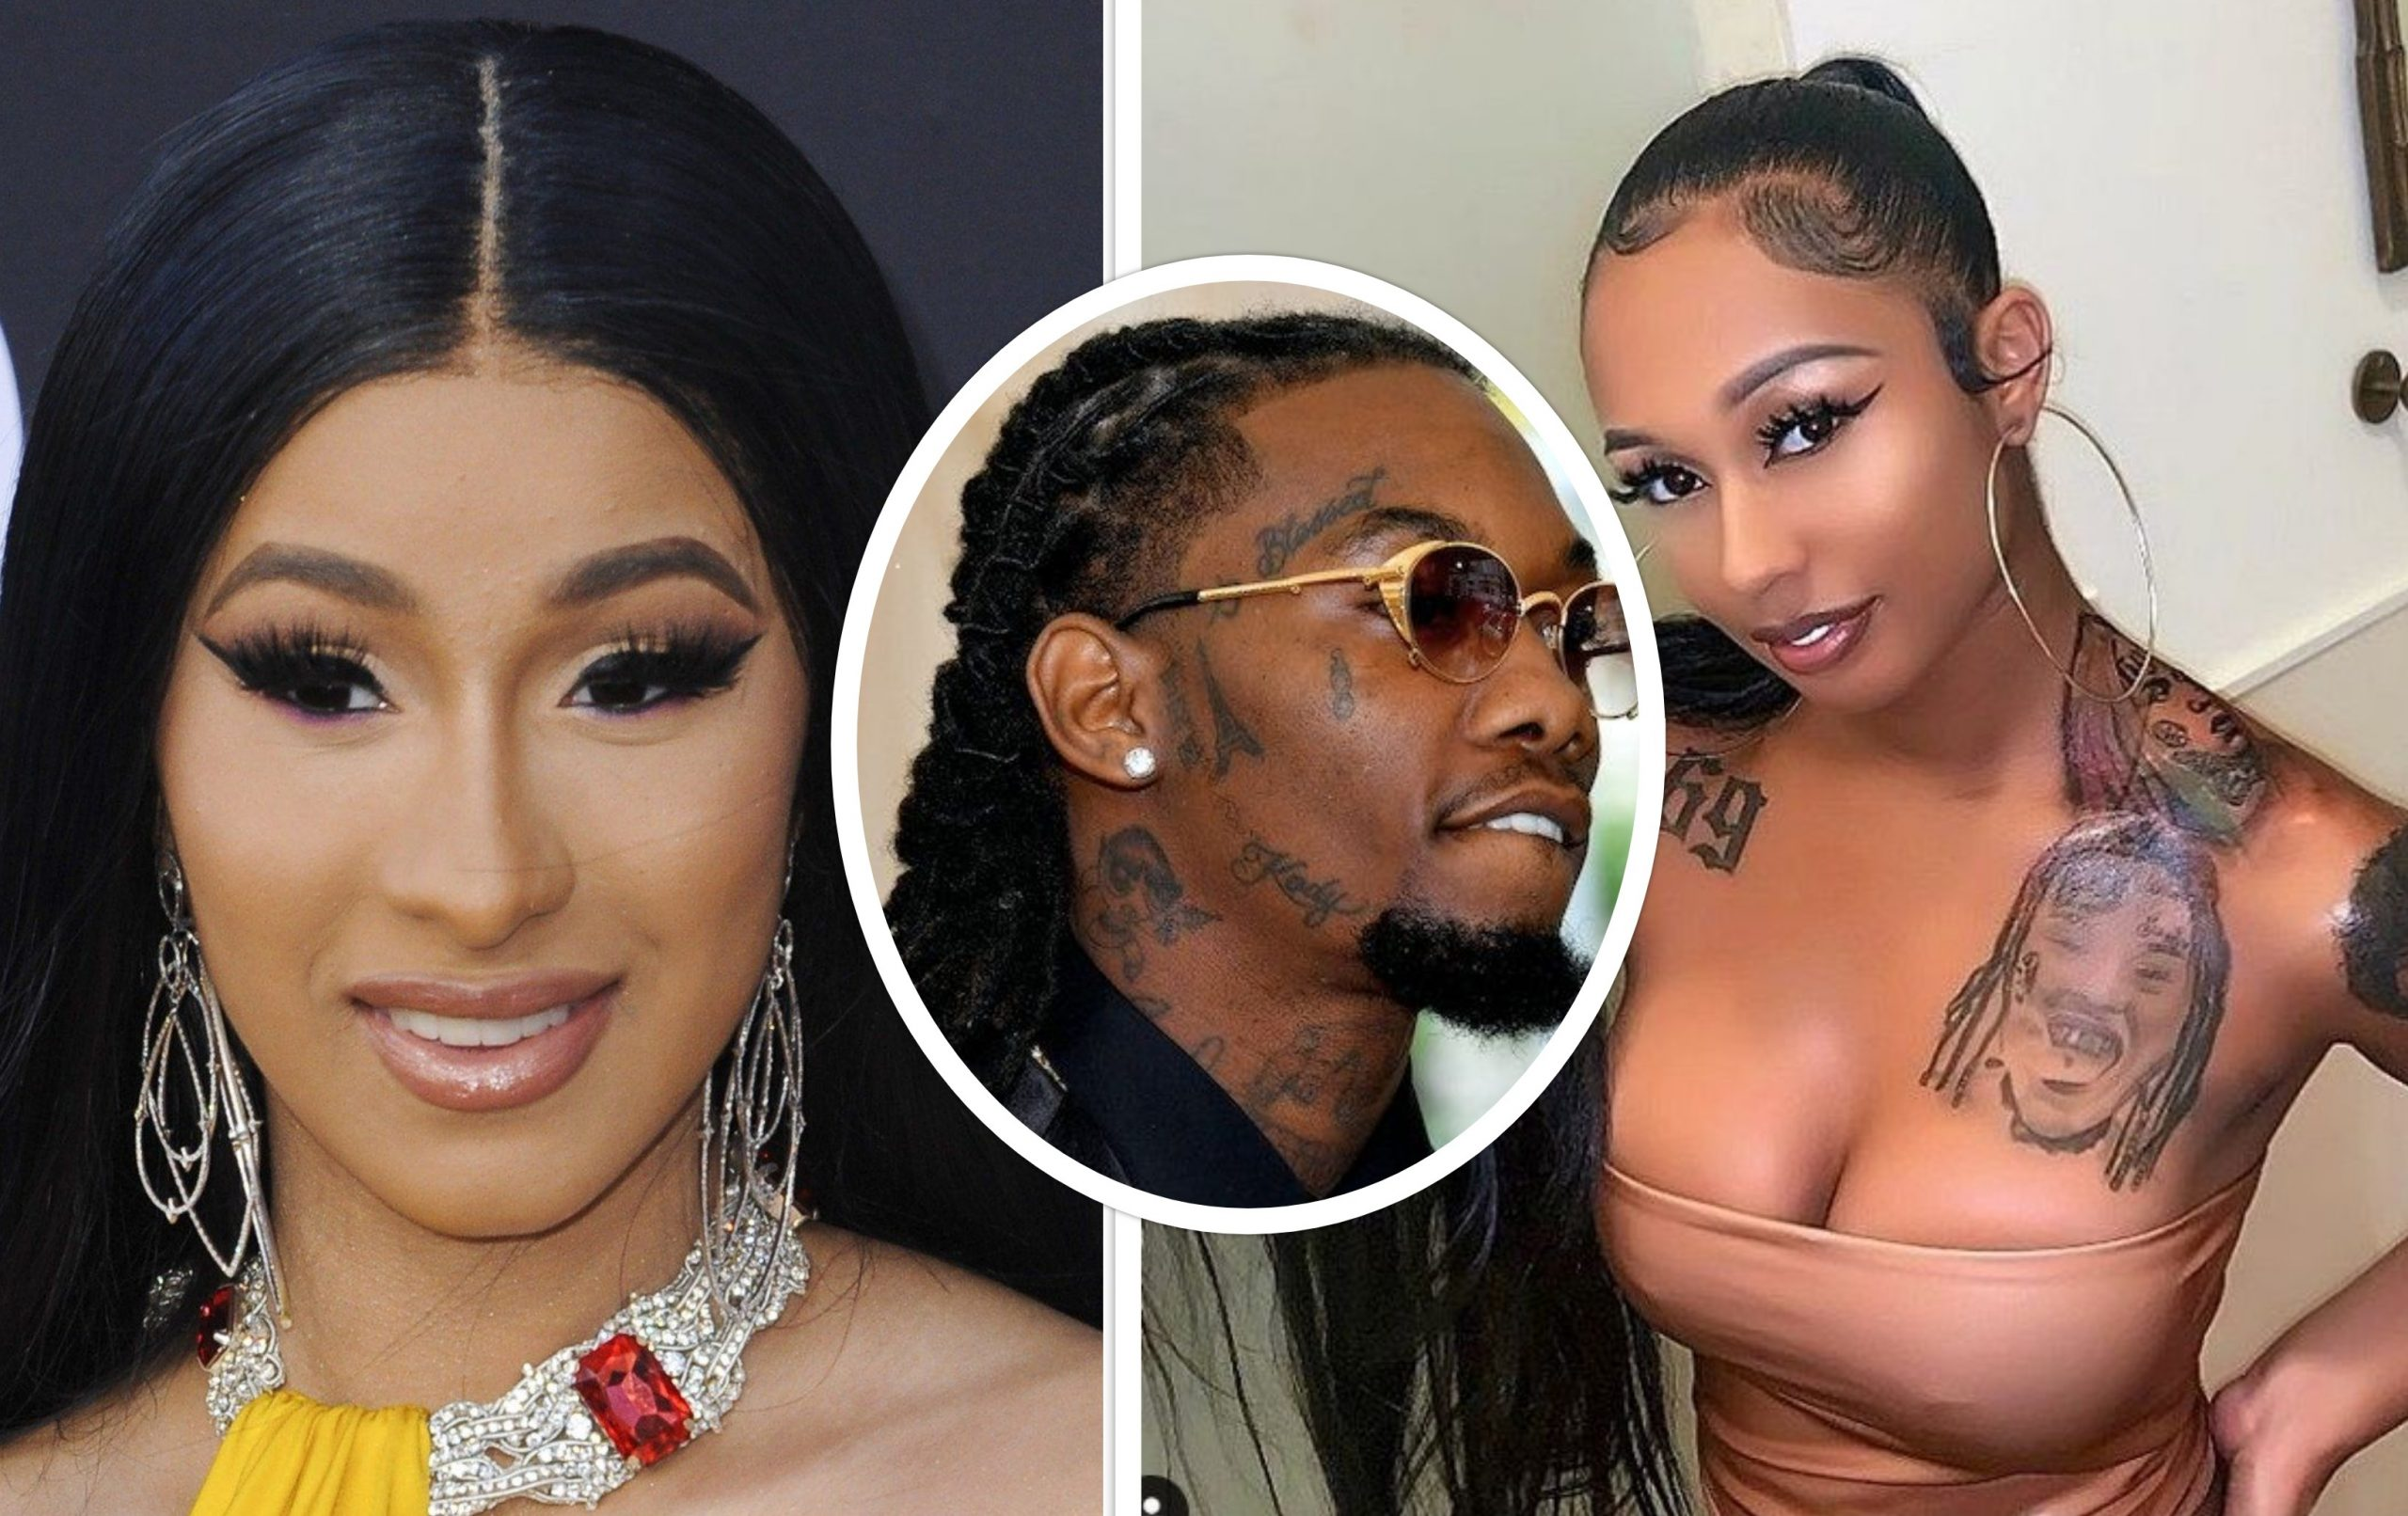 Cardi B Defends Offset After His DMs Allegedly Leaked